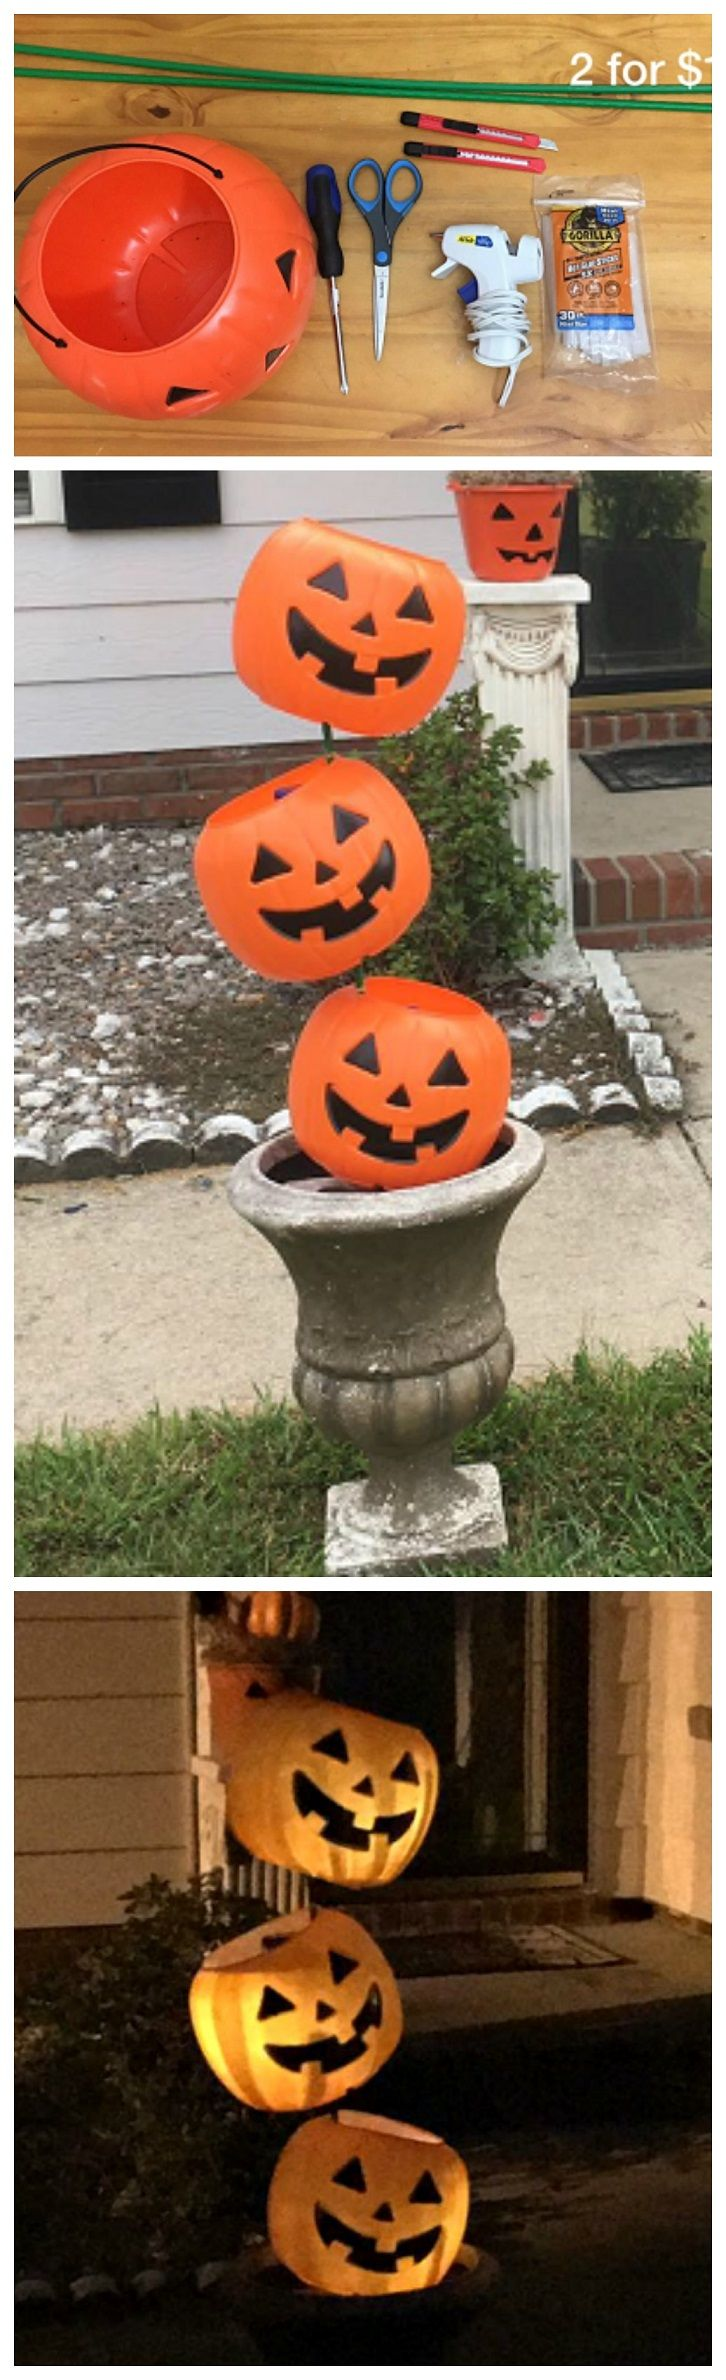 make a plastic pumpkin pail tipsy decoration for halloween such a cheap and easy craft - Cheap Halloween Decor